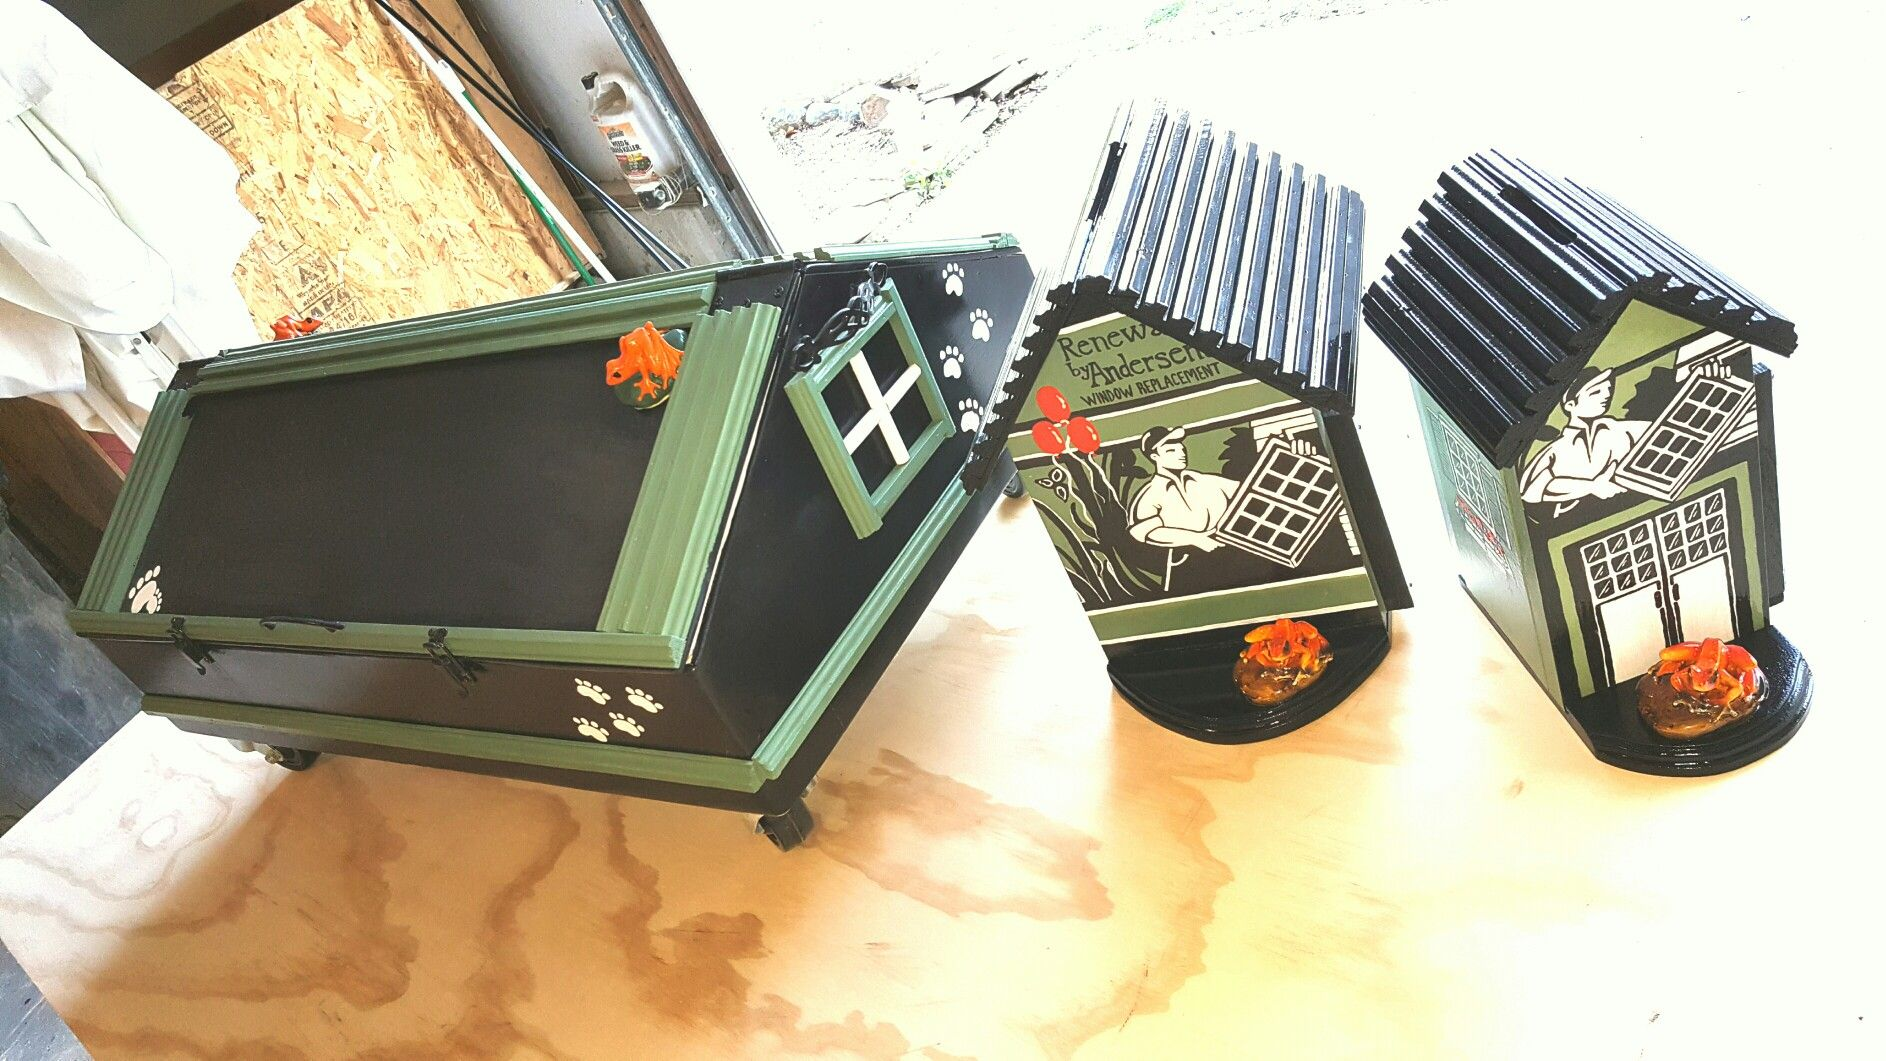 Custom Contest Boxes and Doghouse Carryall w/ chalkboard for kids. Made for Anderson Windows & Doors.